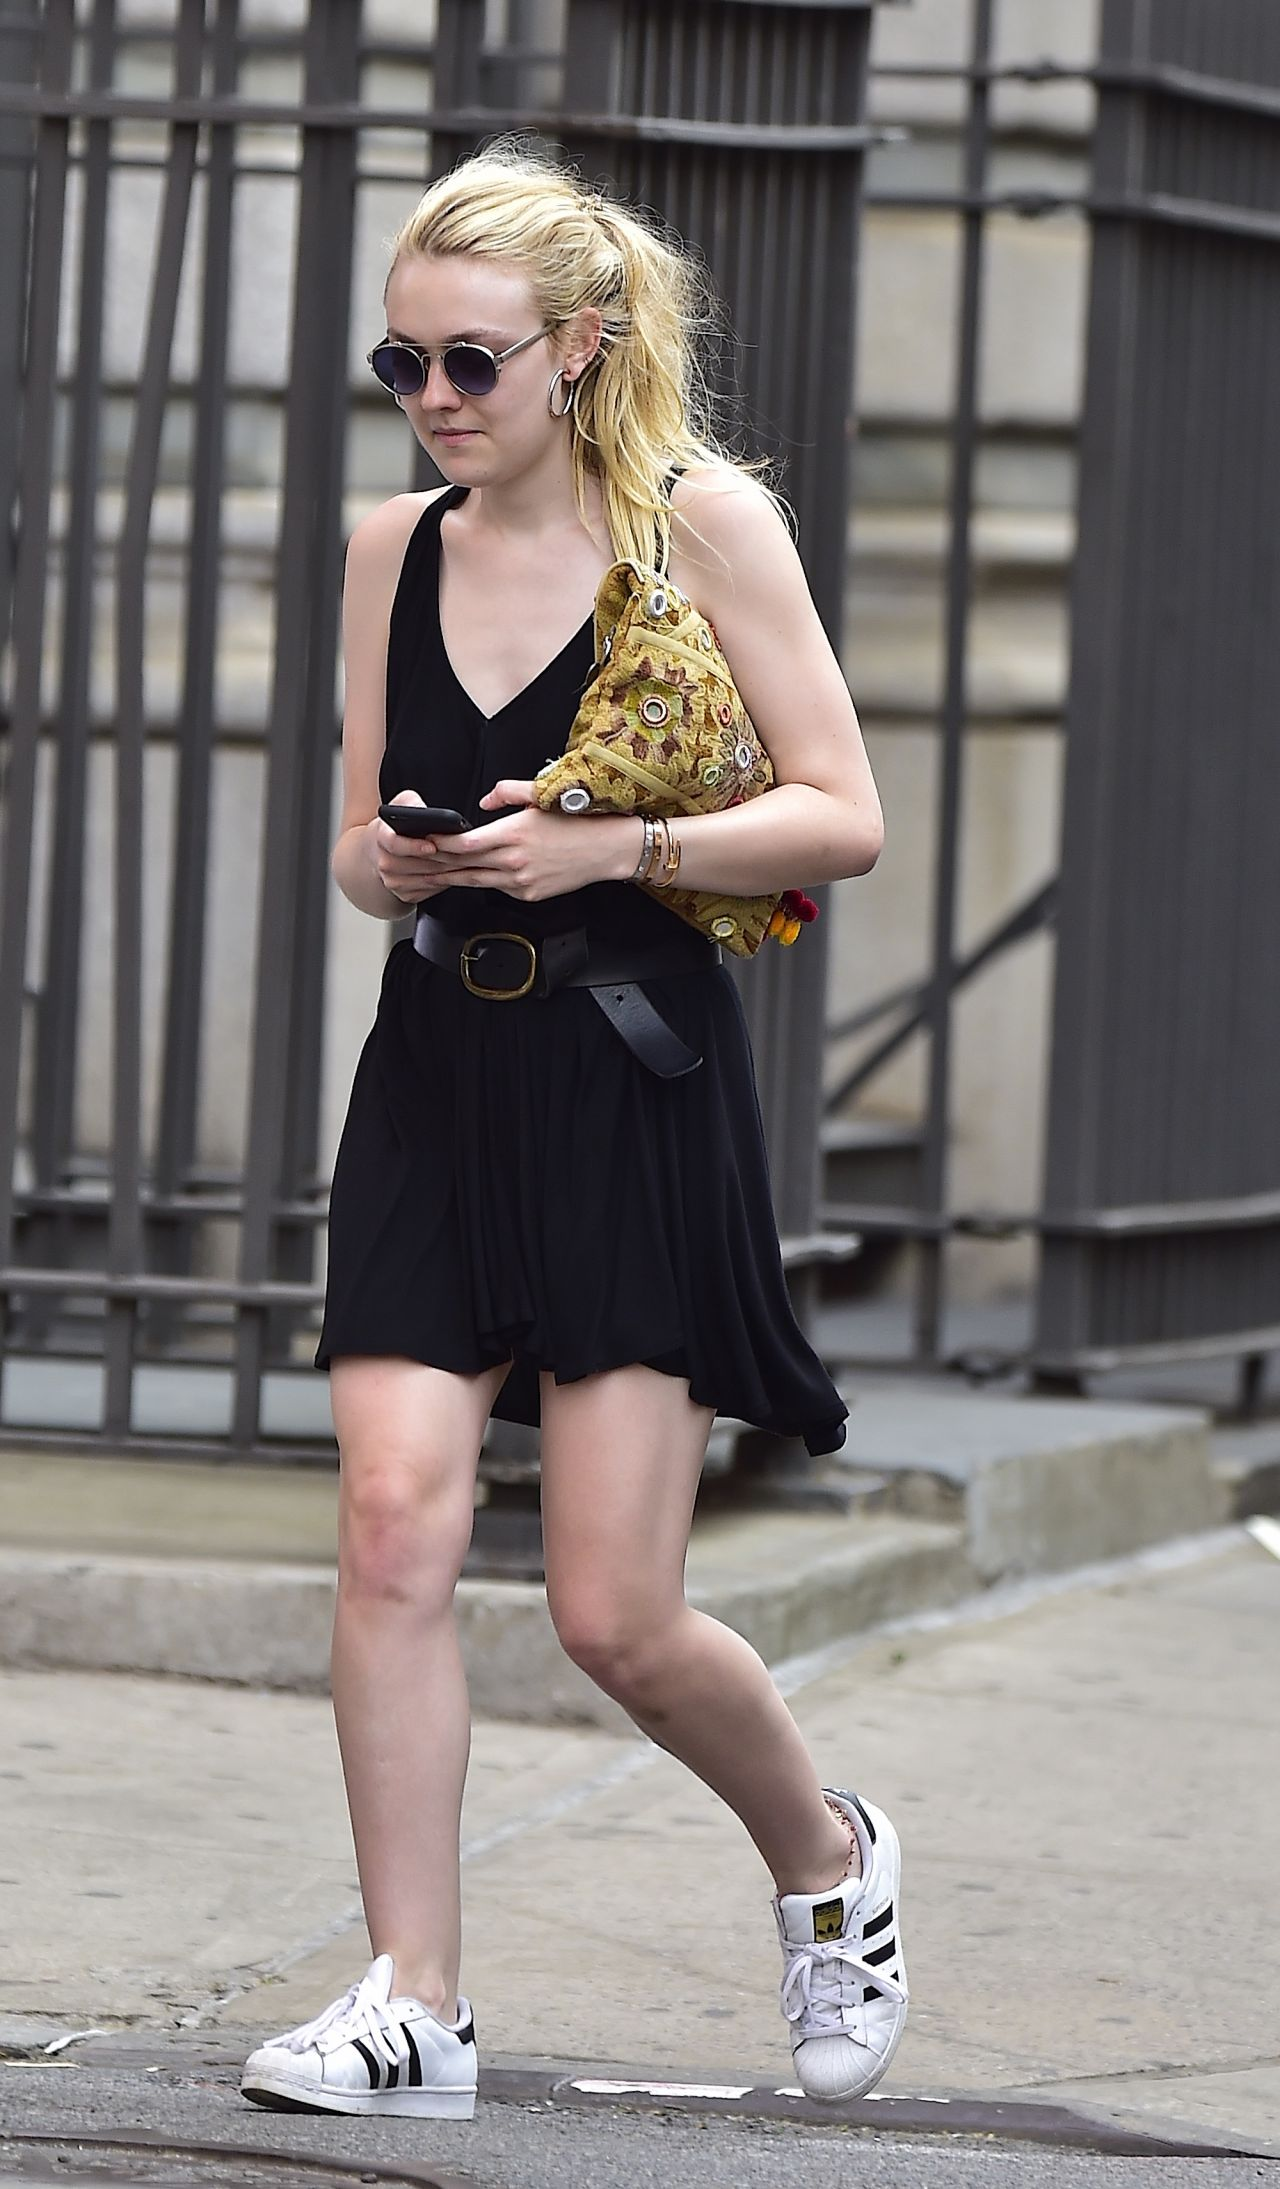 Black dress in summer - Black Dress In Summer Dakota Fanning Summer Style In Short Black Dress In Soho Nyc